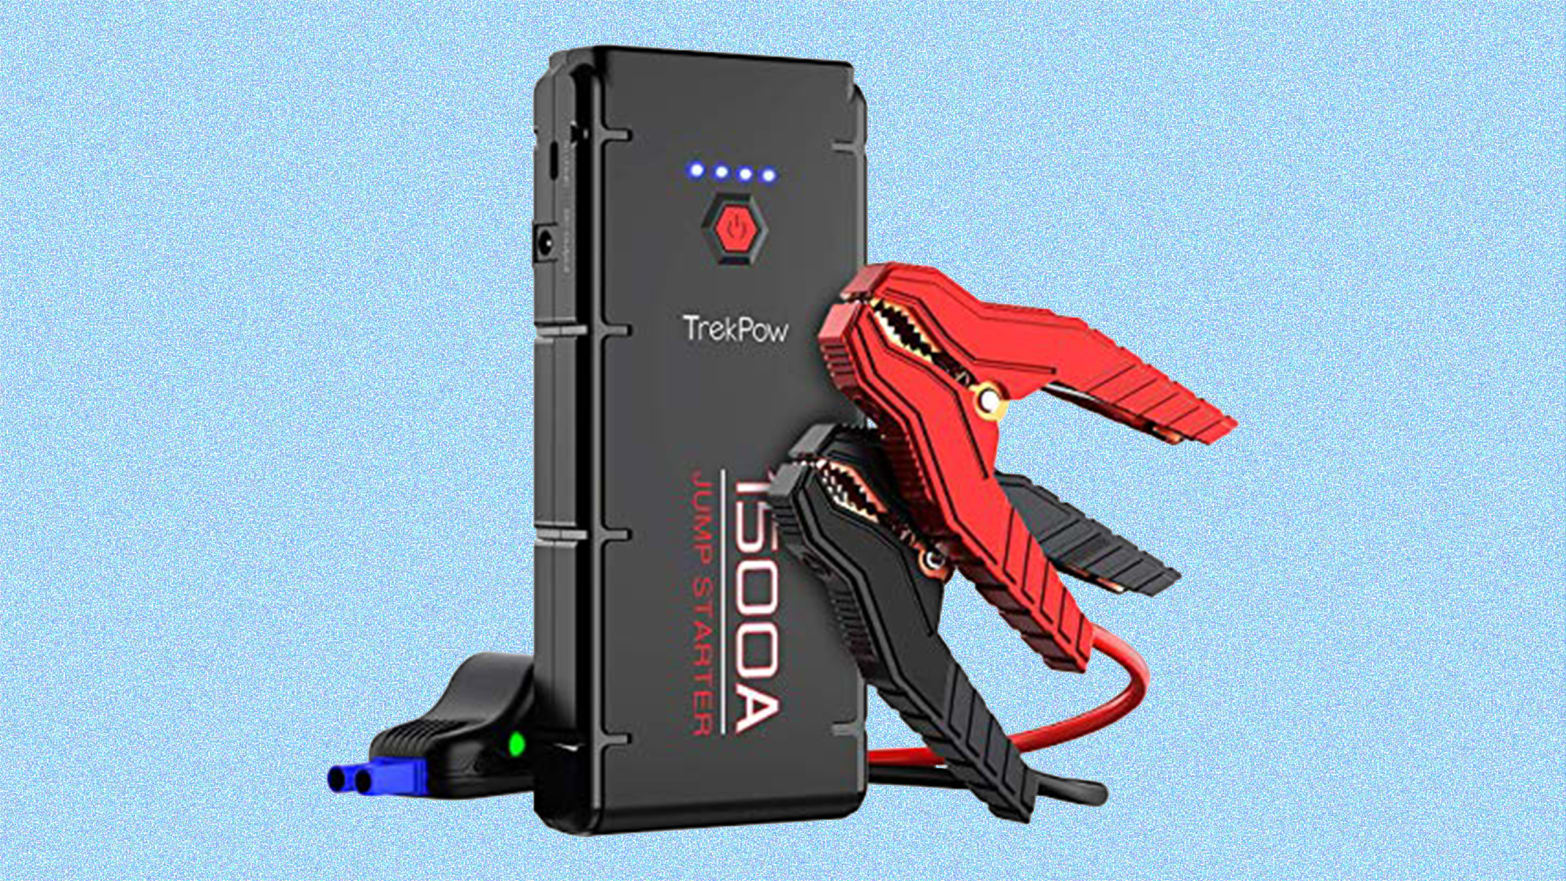 Save 30% Today on Amazon's Top-Selling Car Battery Jump Starter So You Never Have to Rely on Strangers